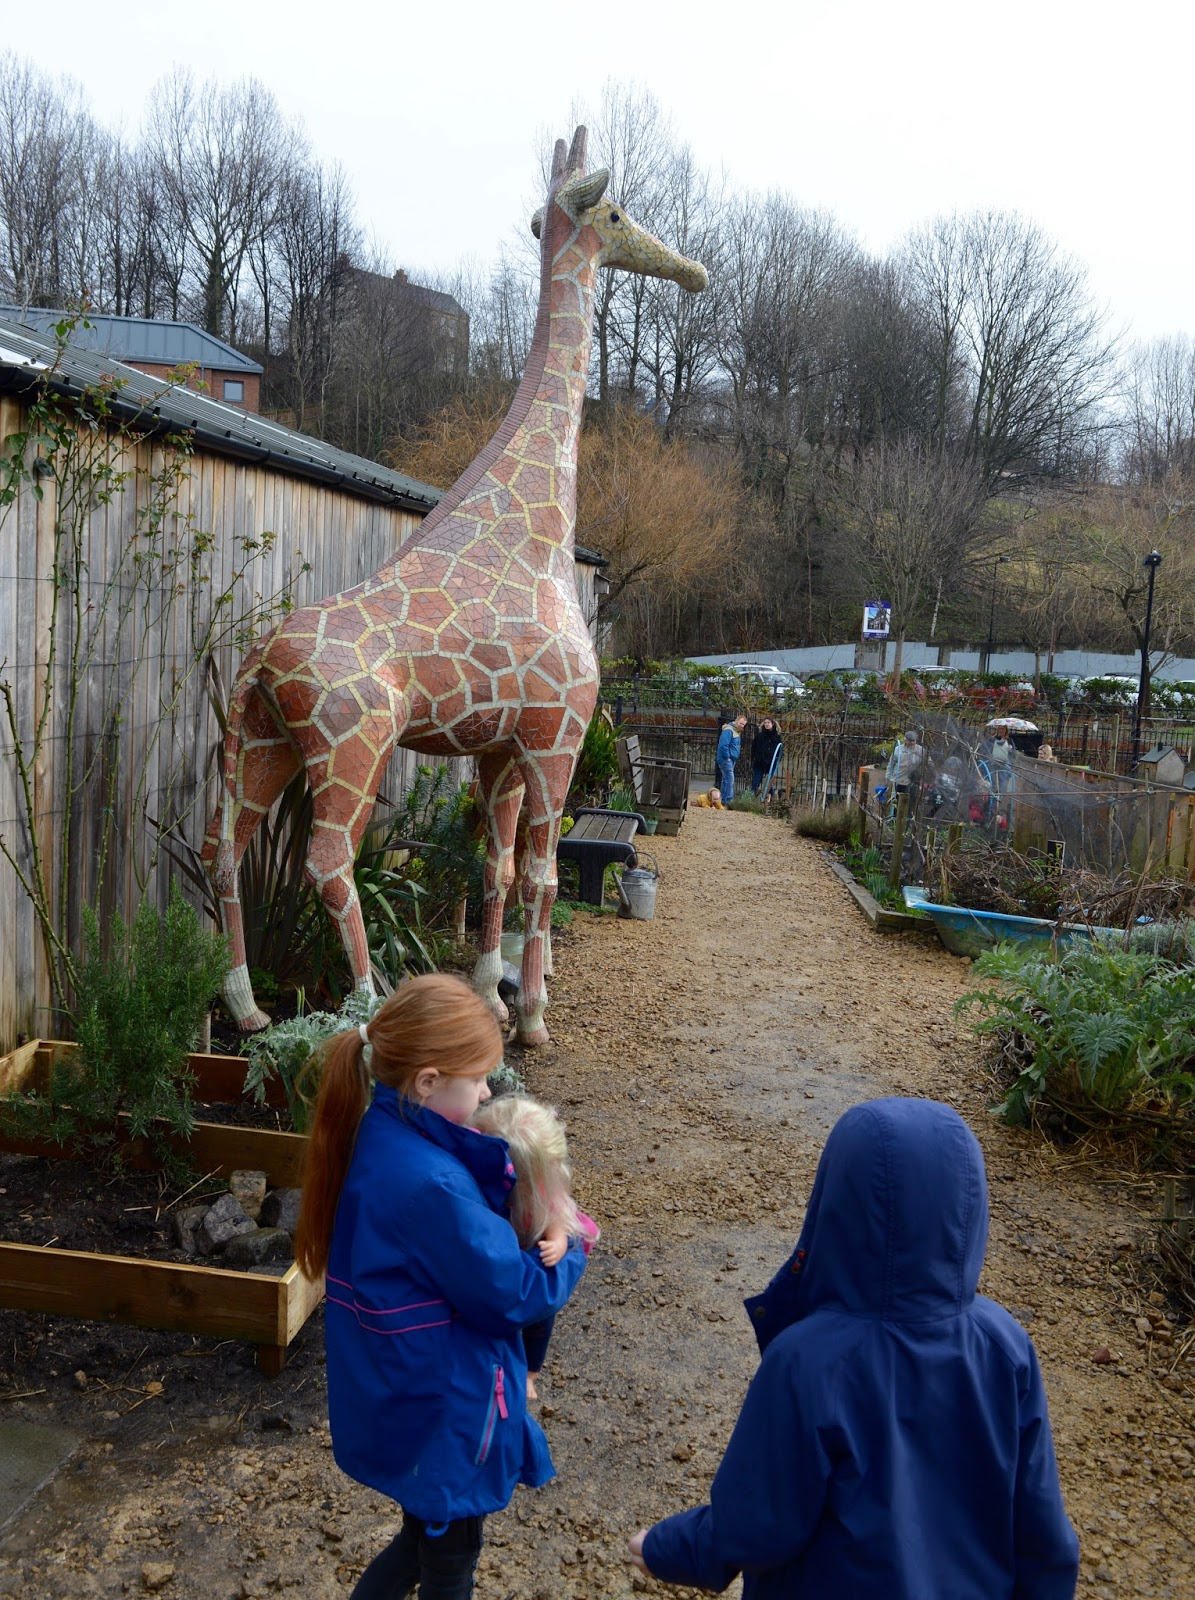 10+ Free Things To Do In Newcastle Upon Tyne - Ouseburn Farm